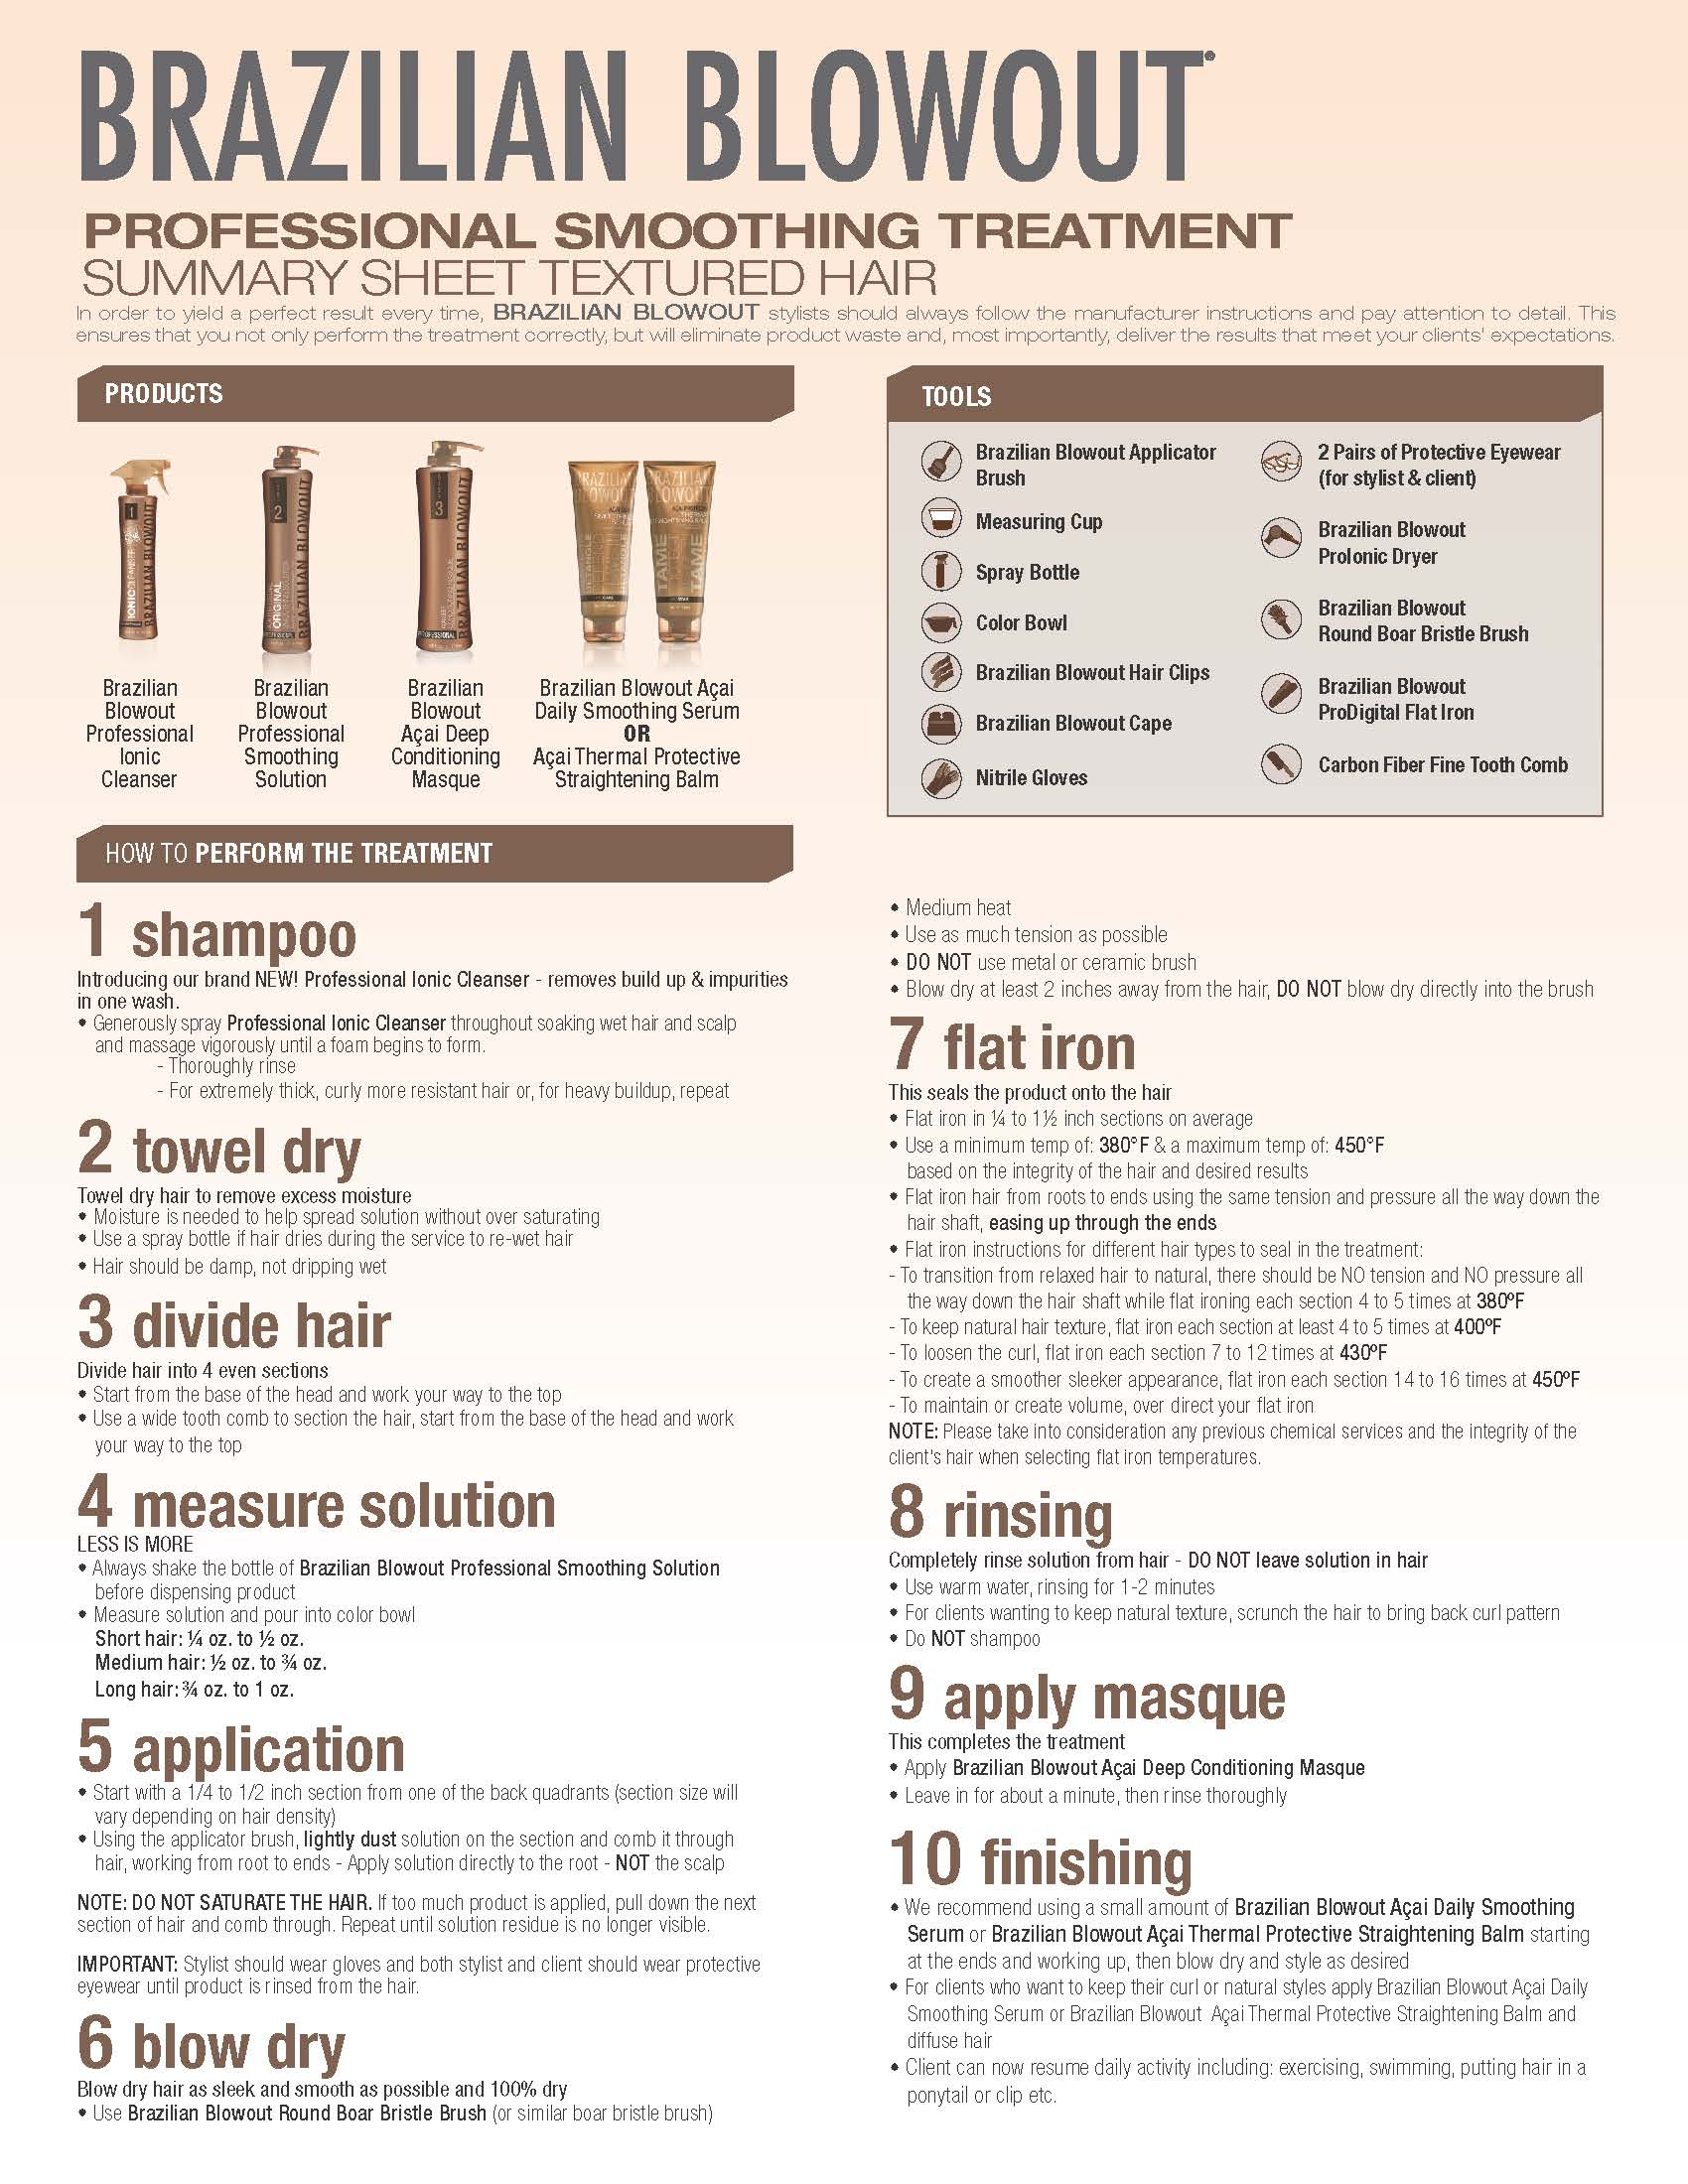 brazilian blowout image